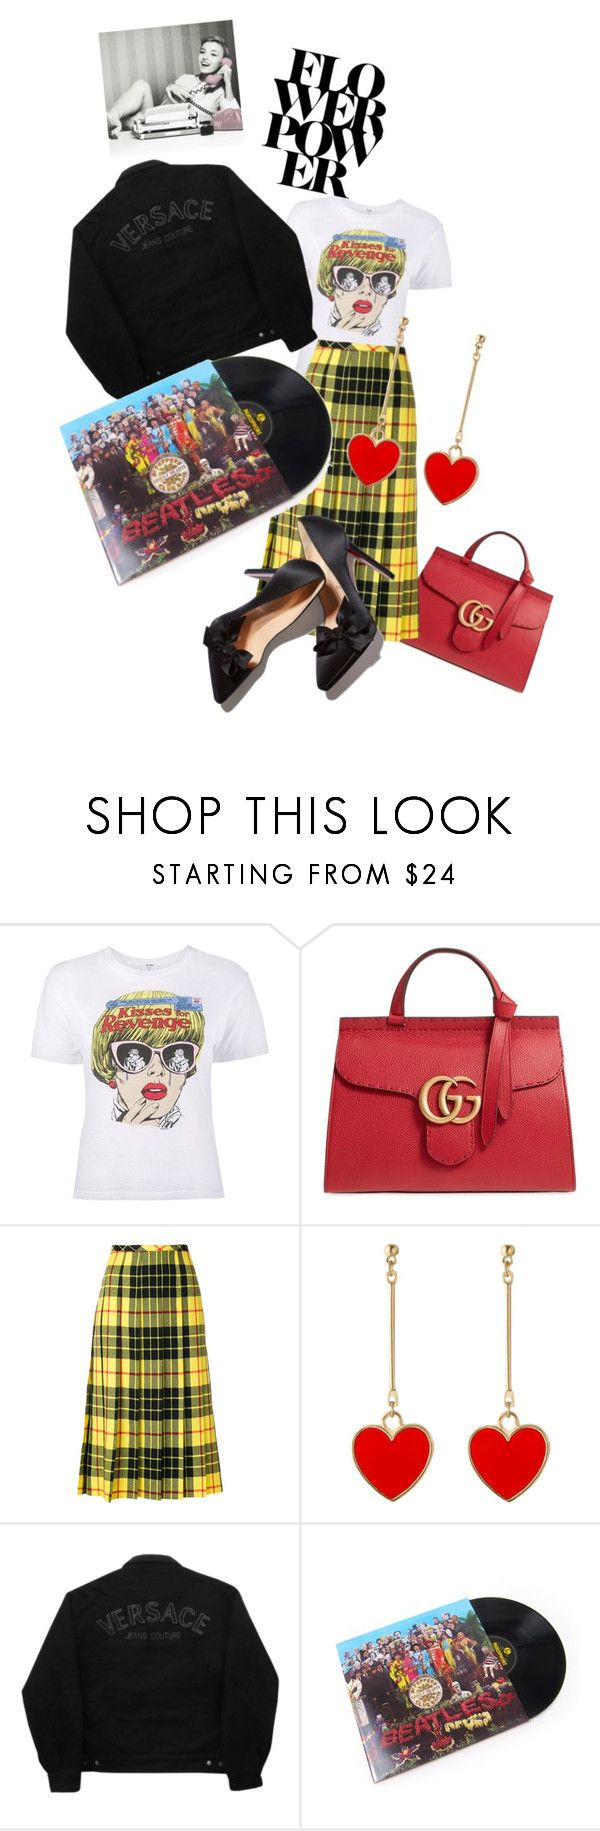 """""""Retro days!!!!"""" by anastasiafaithfilipic ❤ liked on Polyvore featuring Gucci, Versace Jeans Couture, Giles and RetroQueen"""